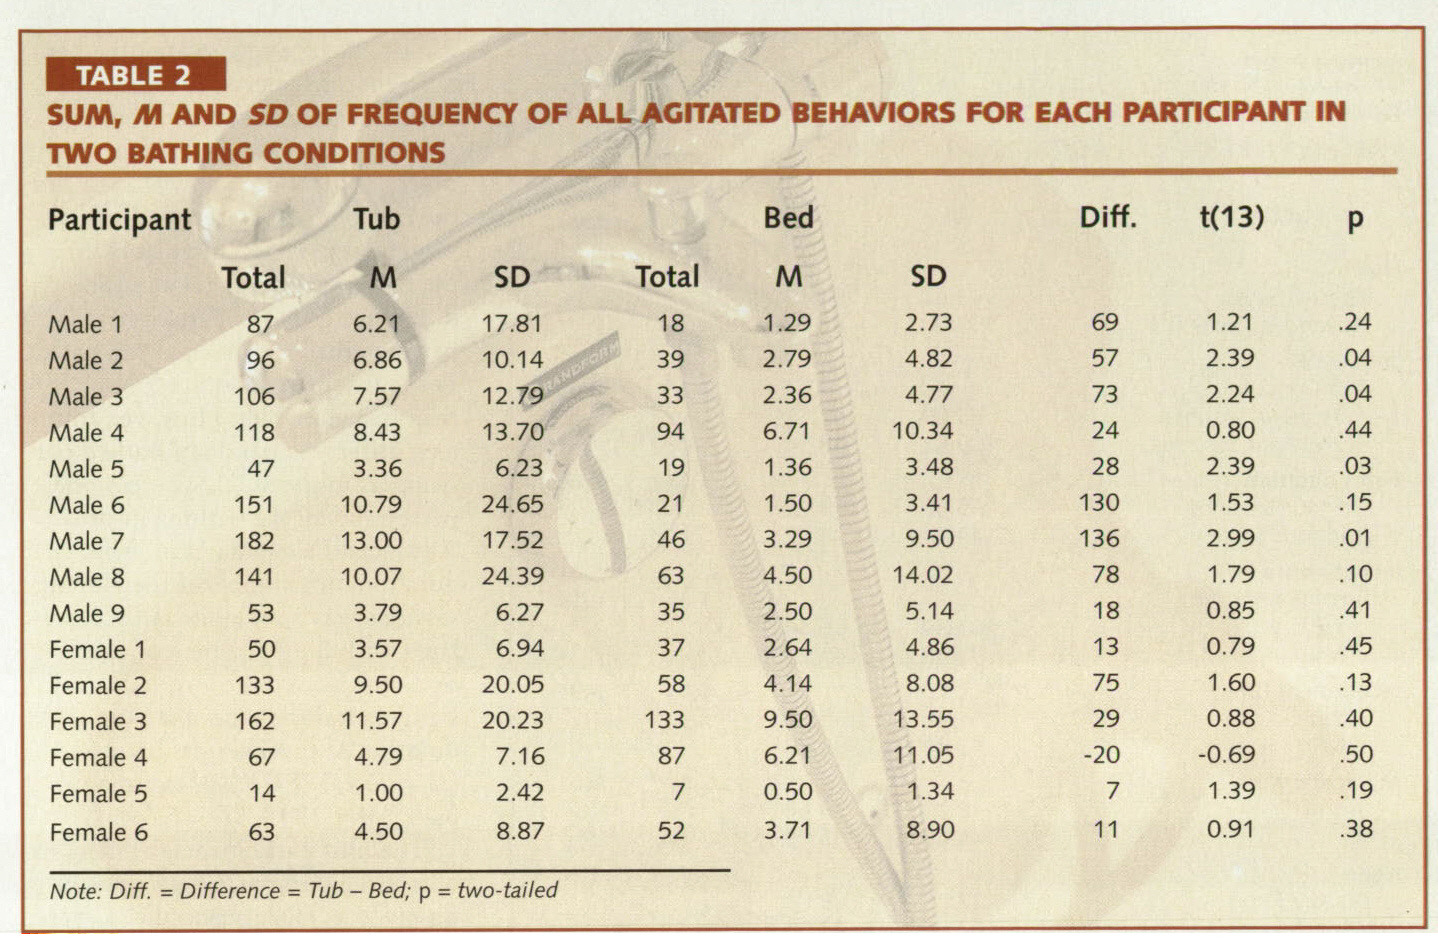 TABLE 2SUM, M AND SD OF FREQUENCY OF ALL AGITATED BEHAVIORS FOR EACH PARTICIPANT IN TWO BATHING CONDITIONS